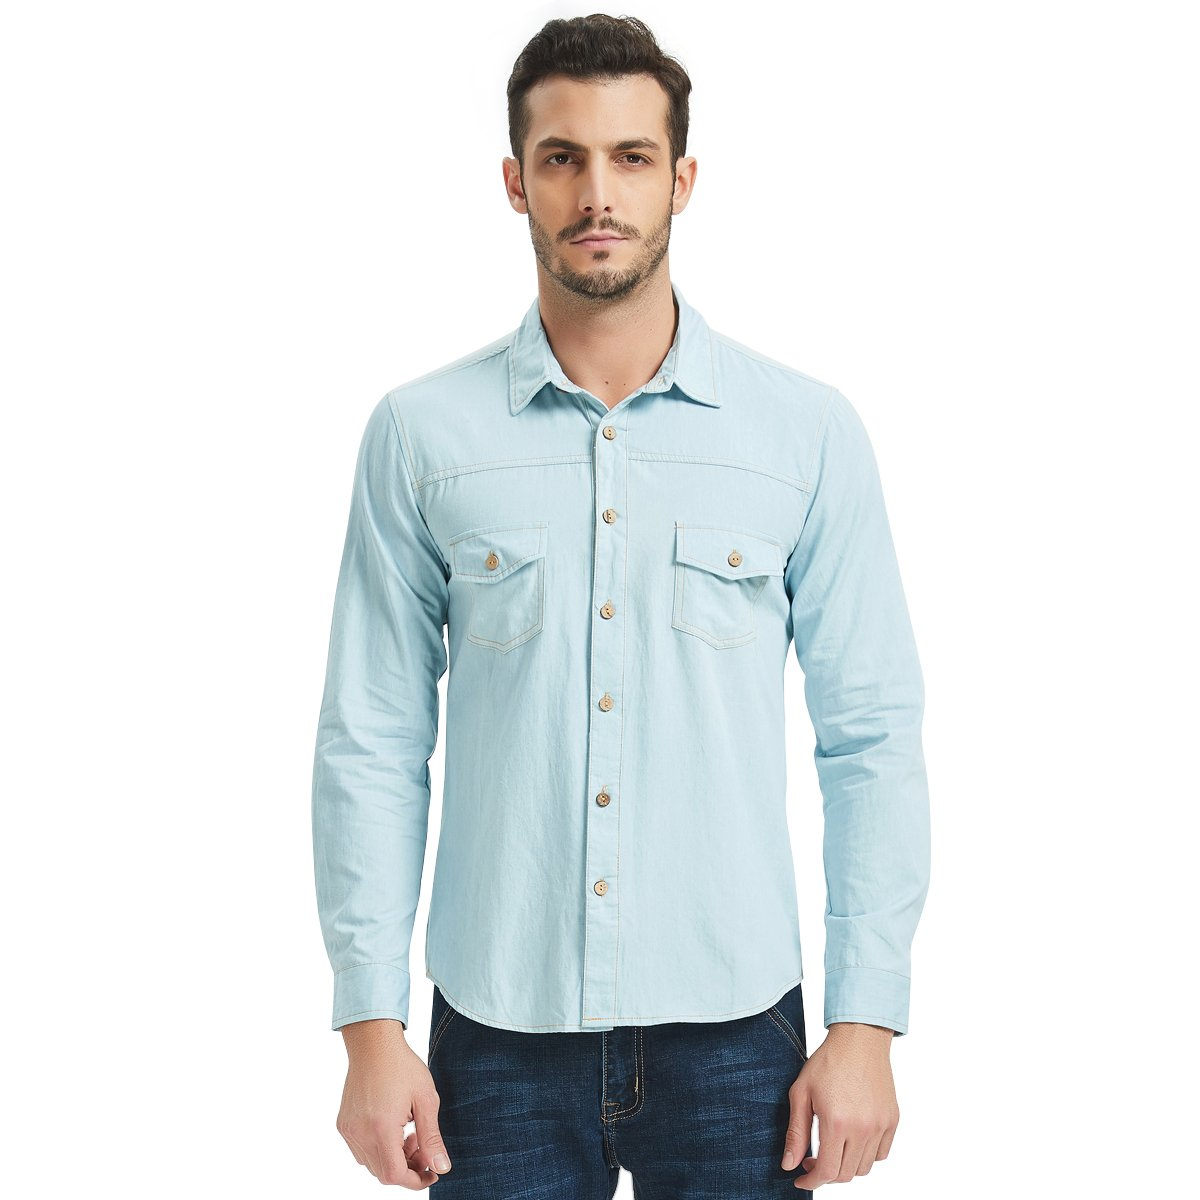 aaf5c4a1260 Men s Long Sleeve Denim Shirt - Premium cotton denim button-down shirt with  a 3D draping slim fitting design long sleeve